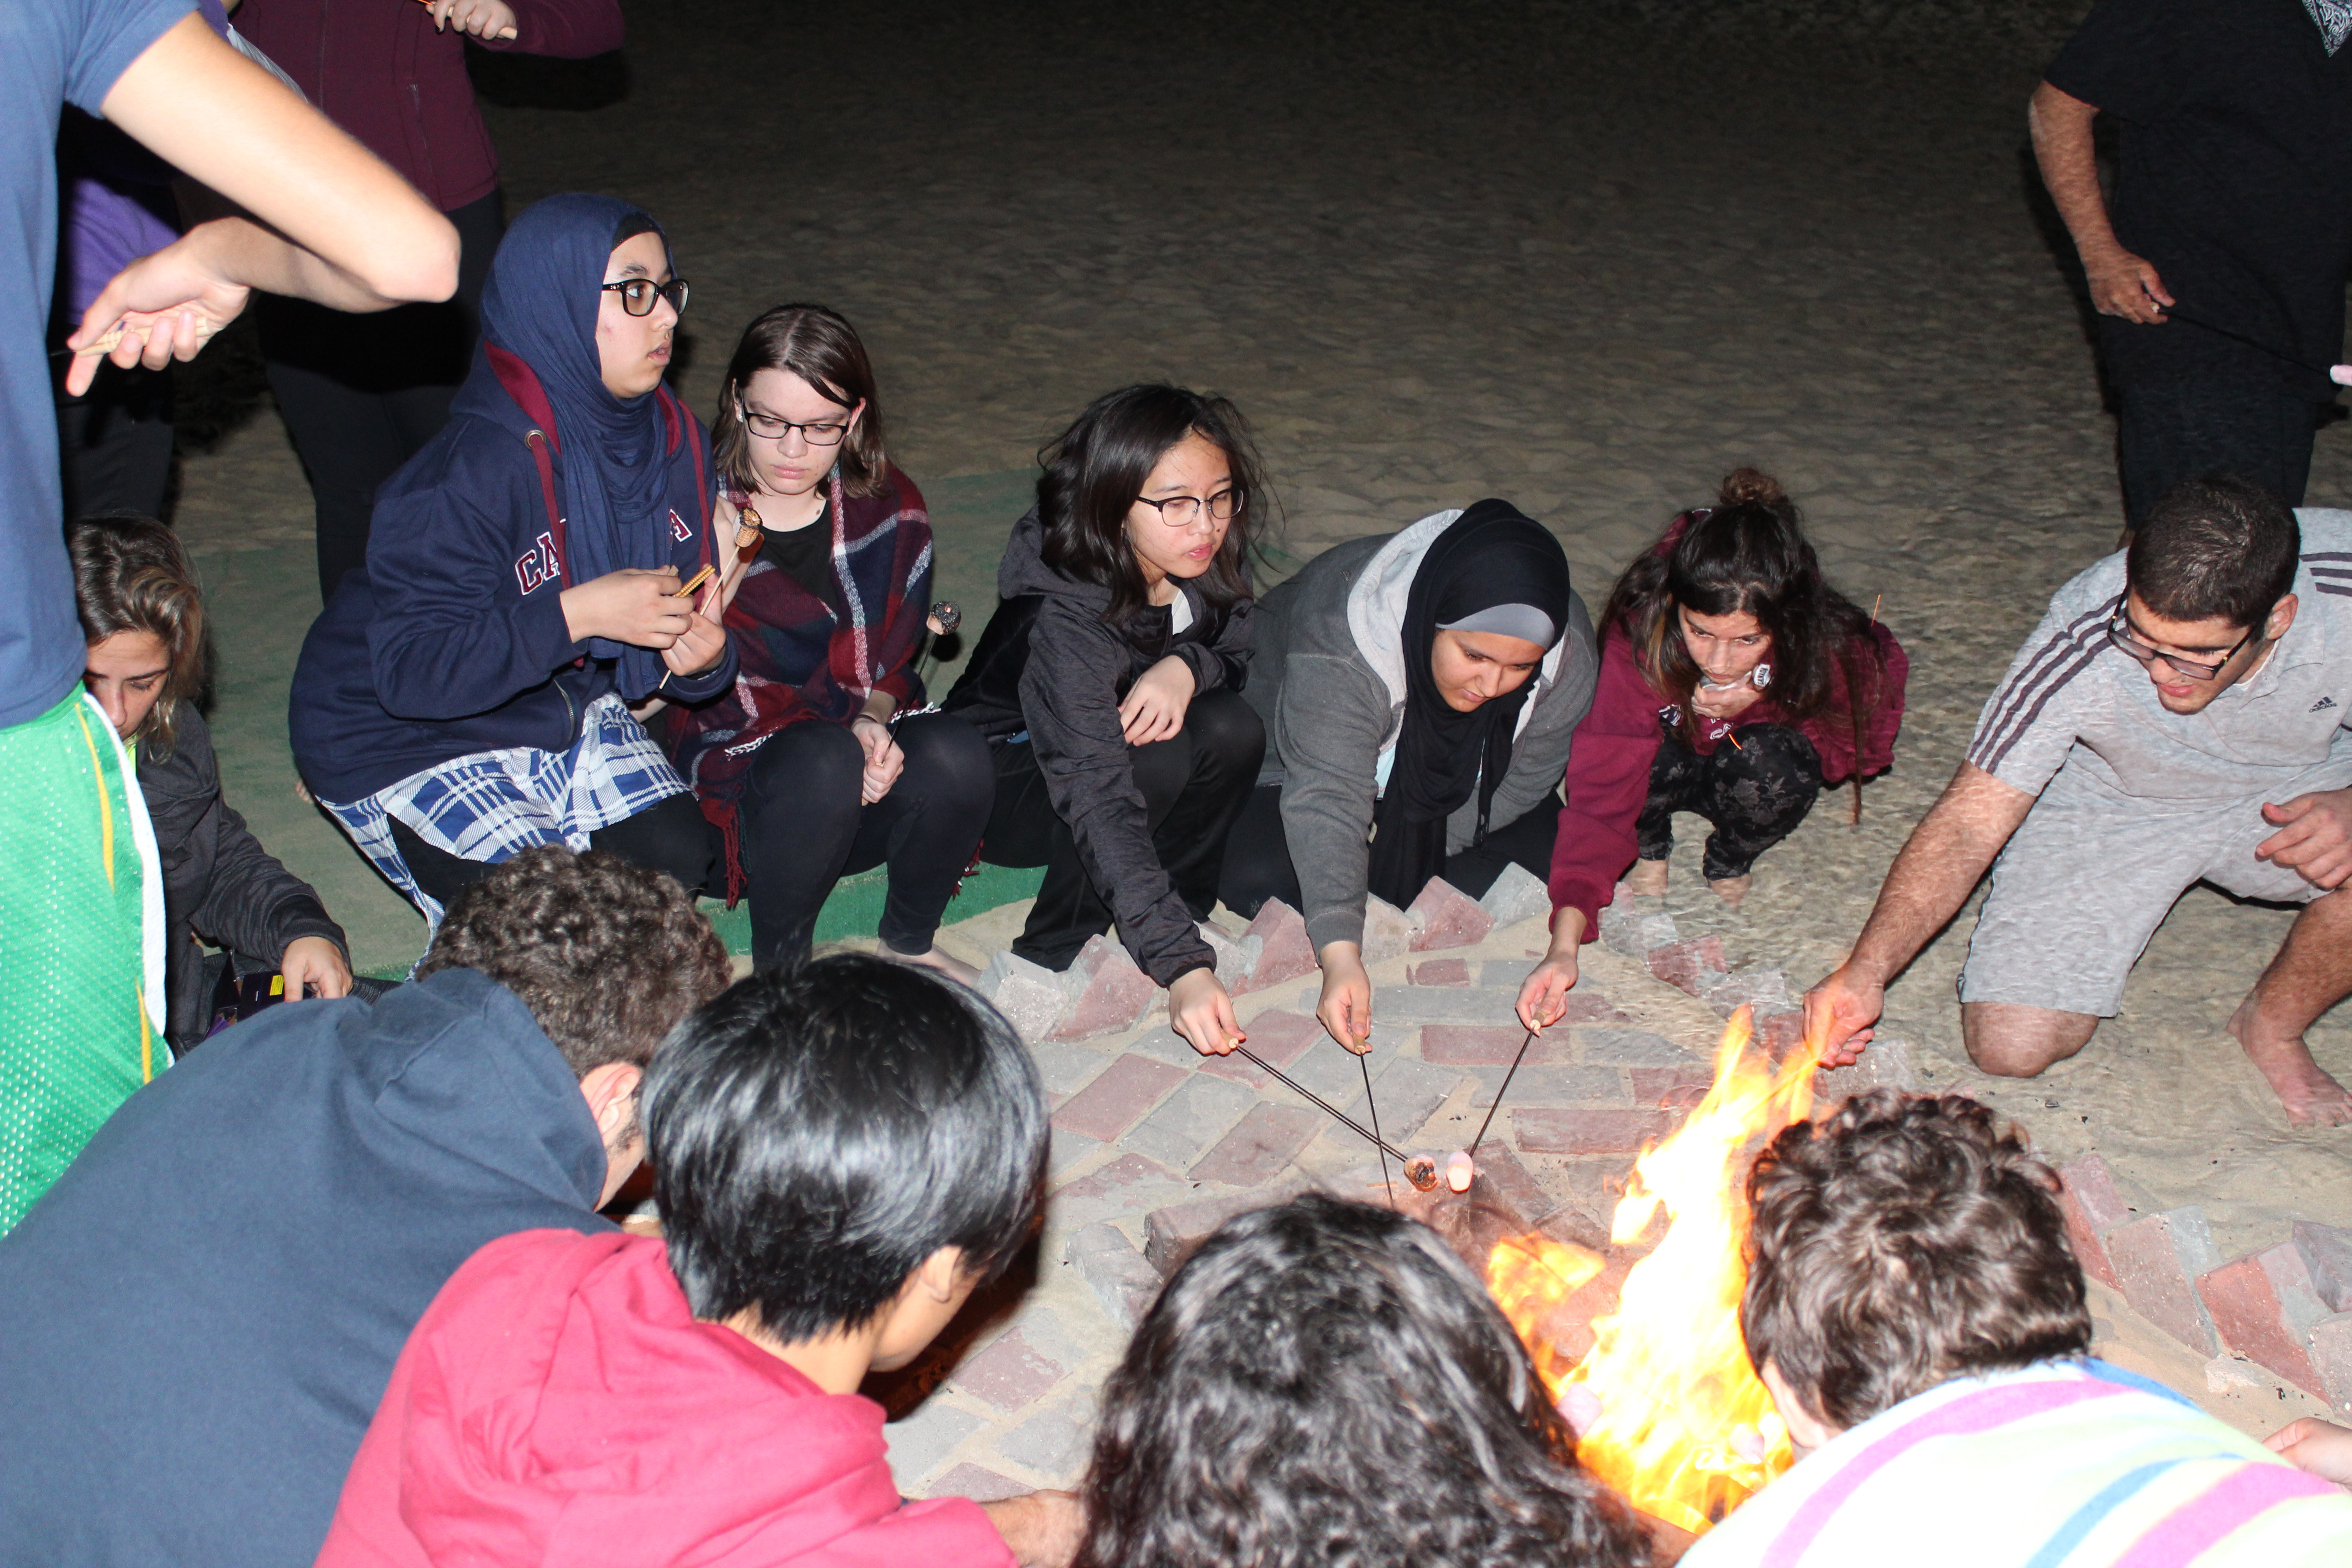 students roasting marshmallows over the fire